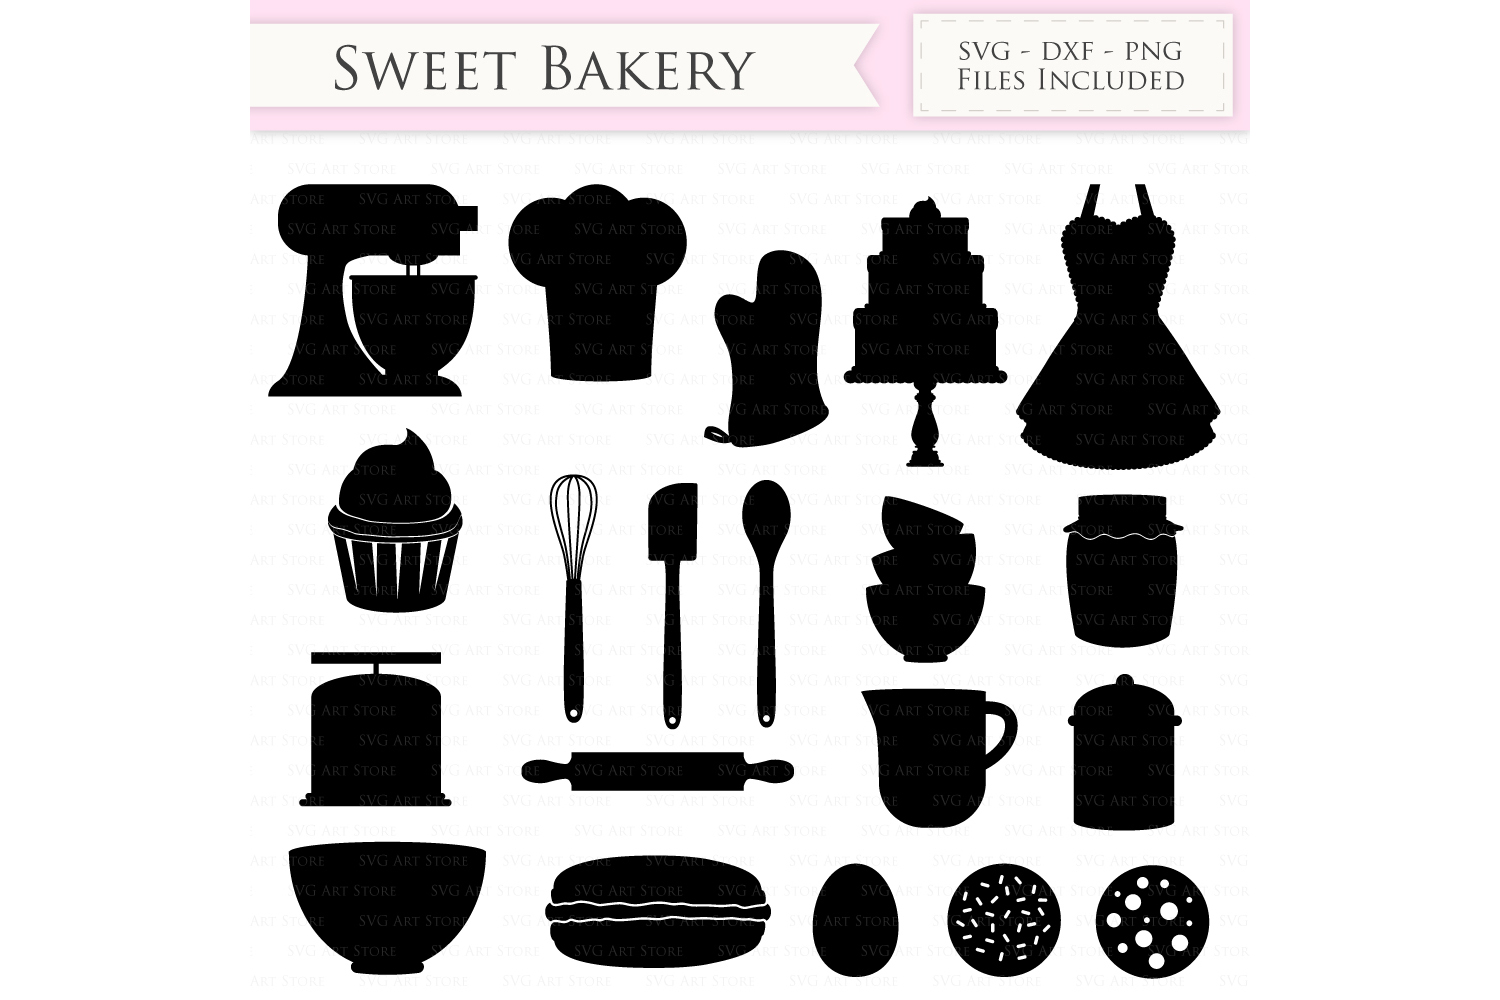 Baking SVG Bakery svg cutting files Cricut and Silhouette SVG dxf png jpg included. Cooking svg cutting files, Vintage Bakery cut files example image 1